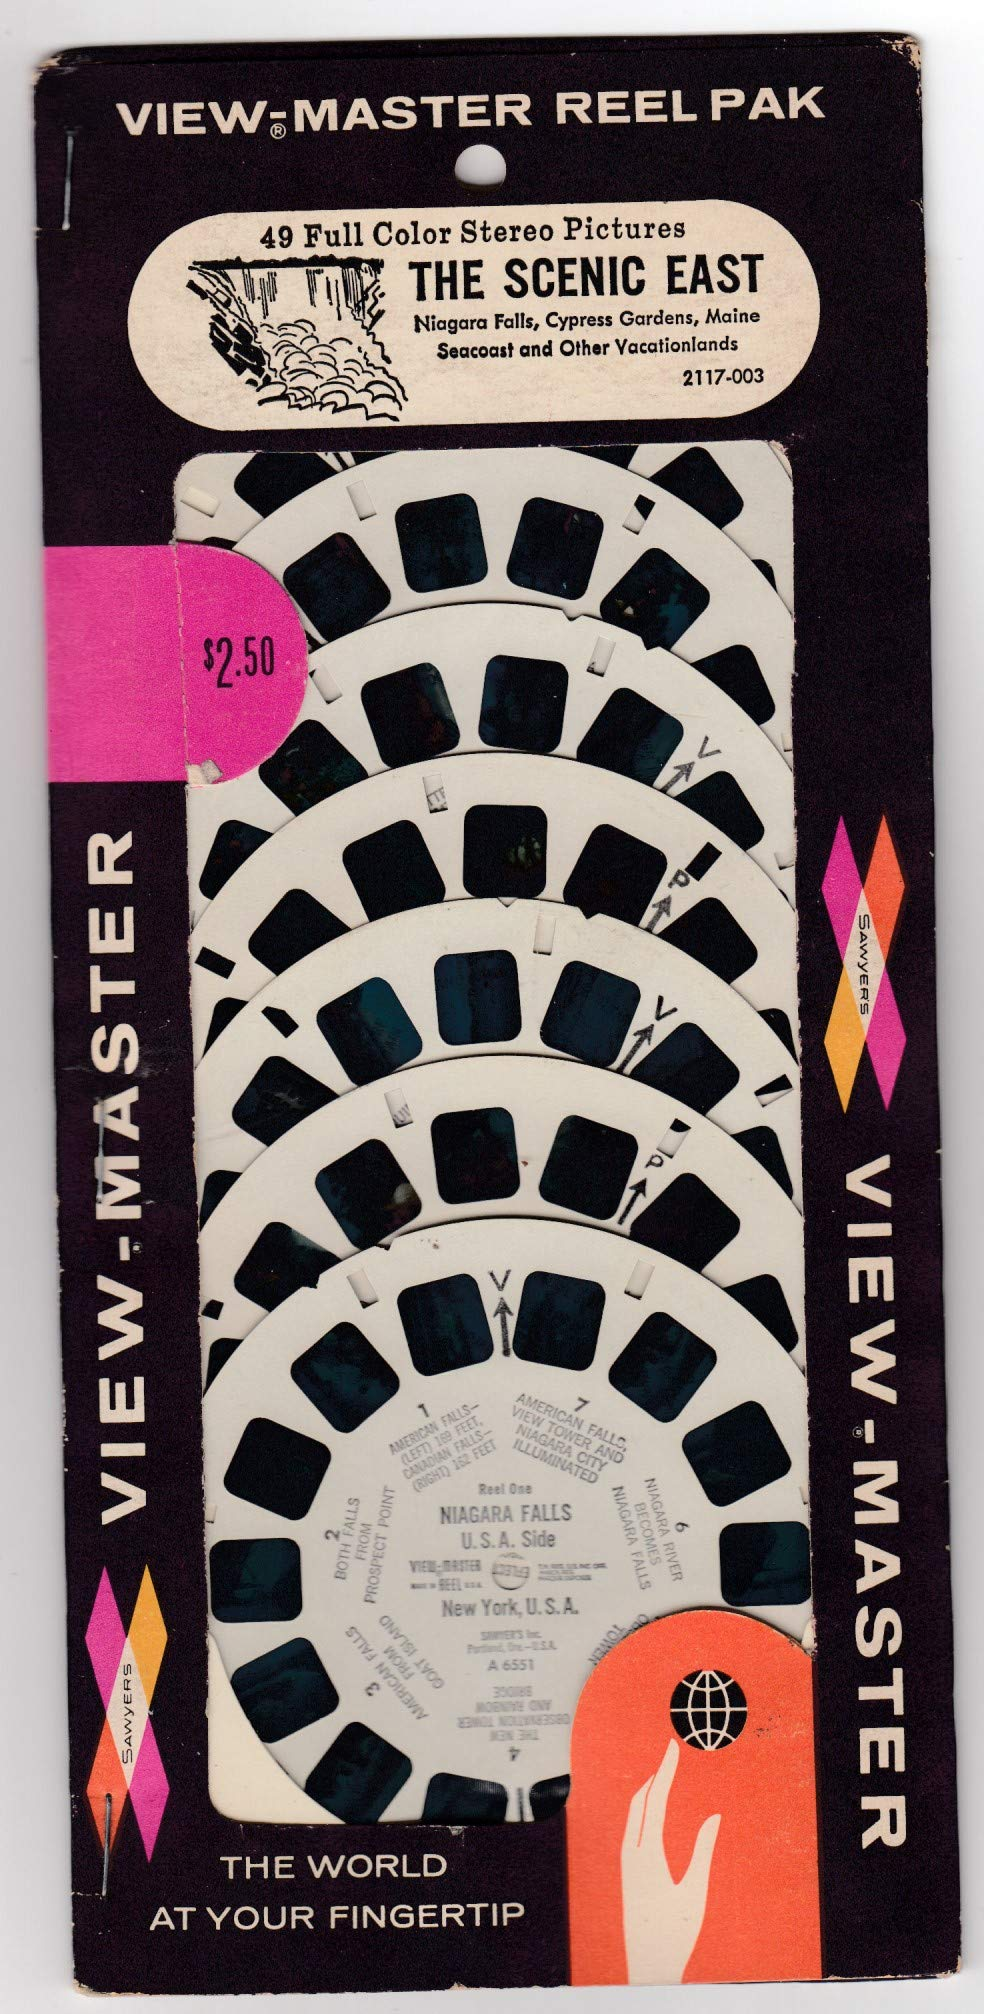 View Master SAWYER'S Reel PAK The Scenic East Unopened 7 REELS Including Niagara Falls, Cypress Gardens, Maine SEACOST Vacationlands by View Master (Image #2)